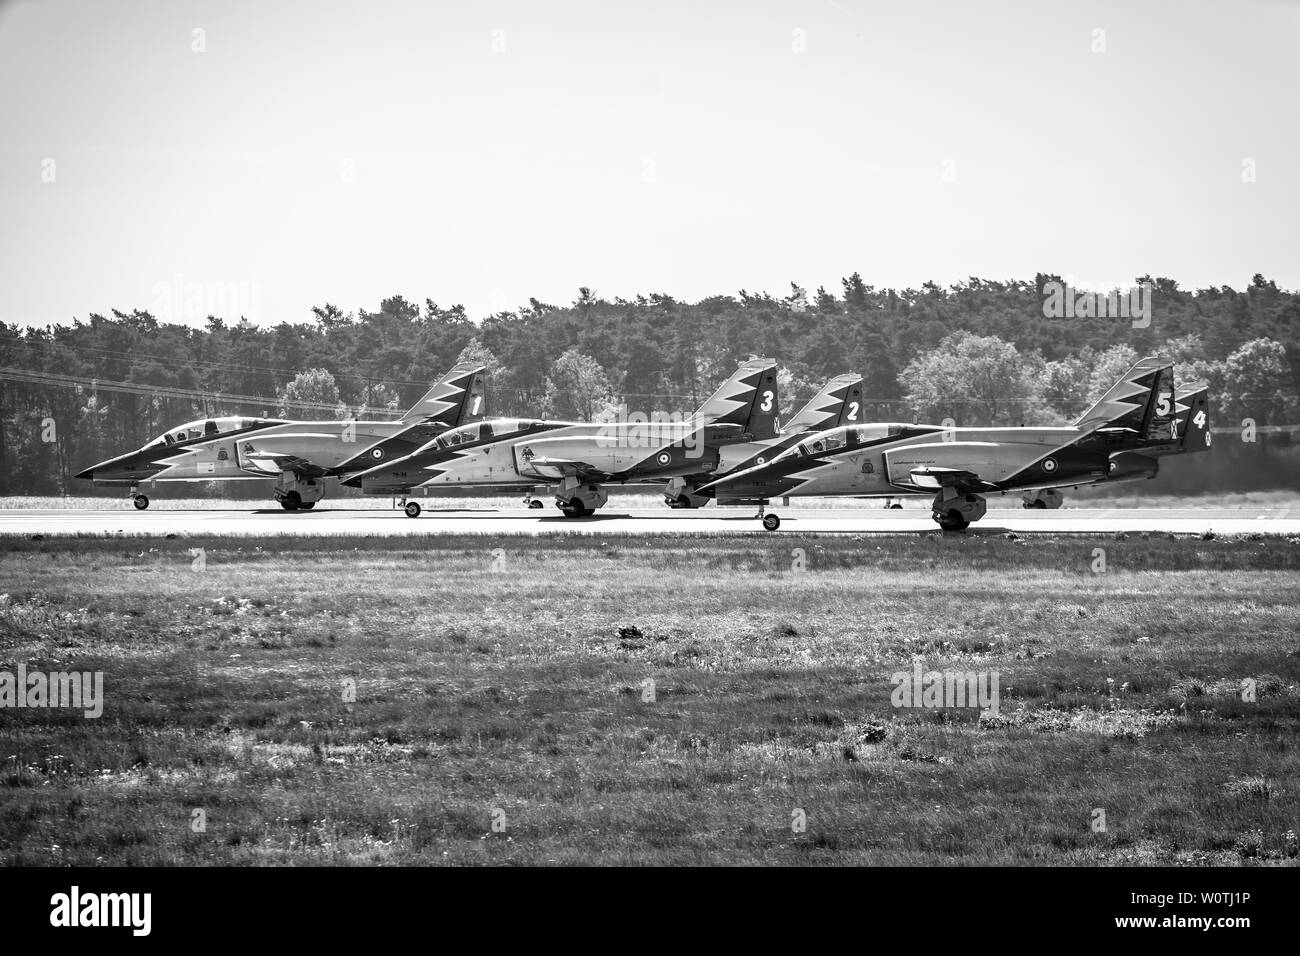 BERLIN - APRIL 28, 2018: Advanced jet trainer CASA C-101 Aviojet by the aerobatic team Patrulla Aguila (Eagle Patrol) on the runway. Black and white. Exhibition ILA Berlin Air Show 2018. - Stock Image